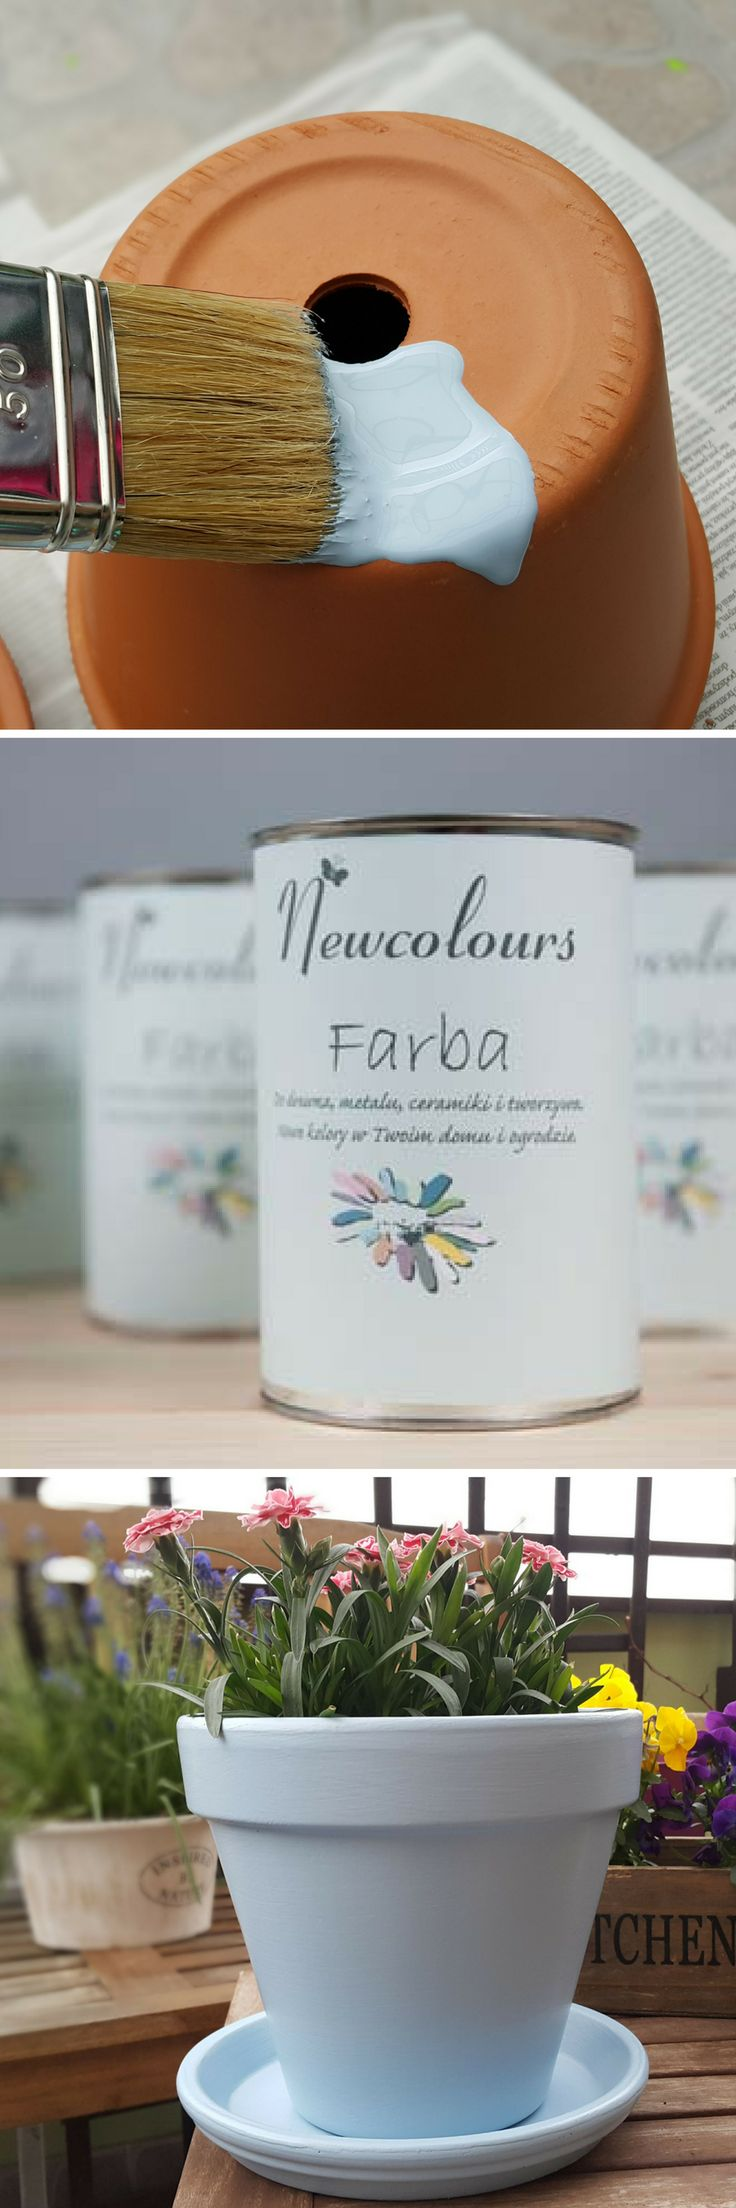 We love flowerpots. Now it is so easy to change their colours everytime we want. With Newcolurs paints.